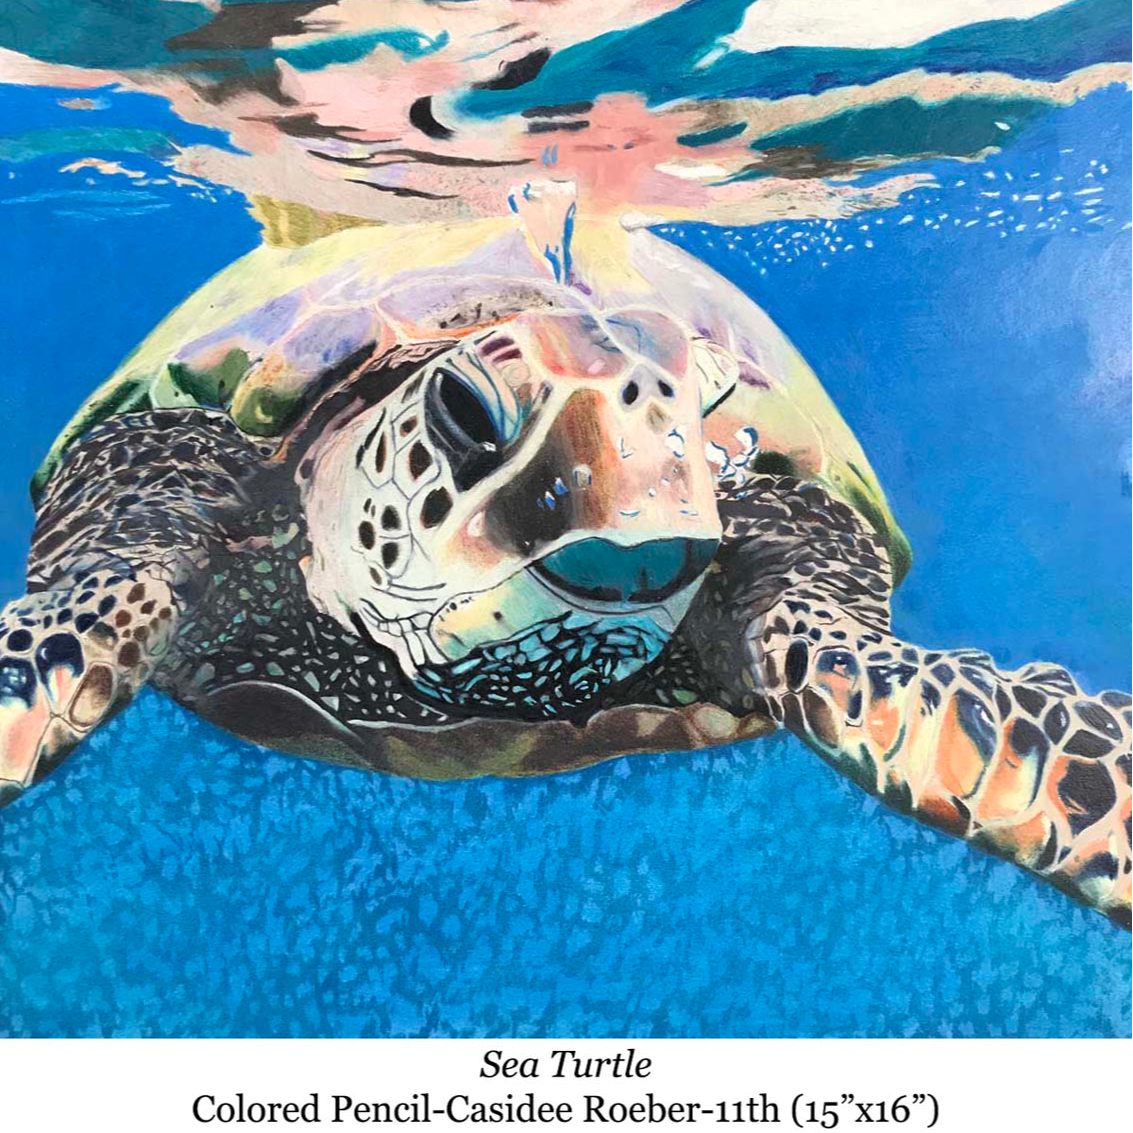 a drawing of a seaturtle